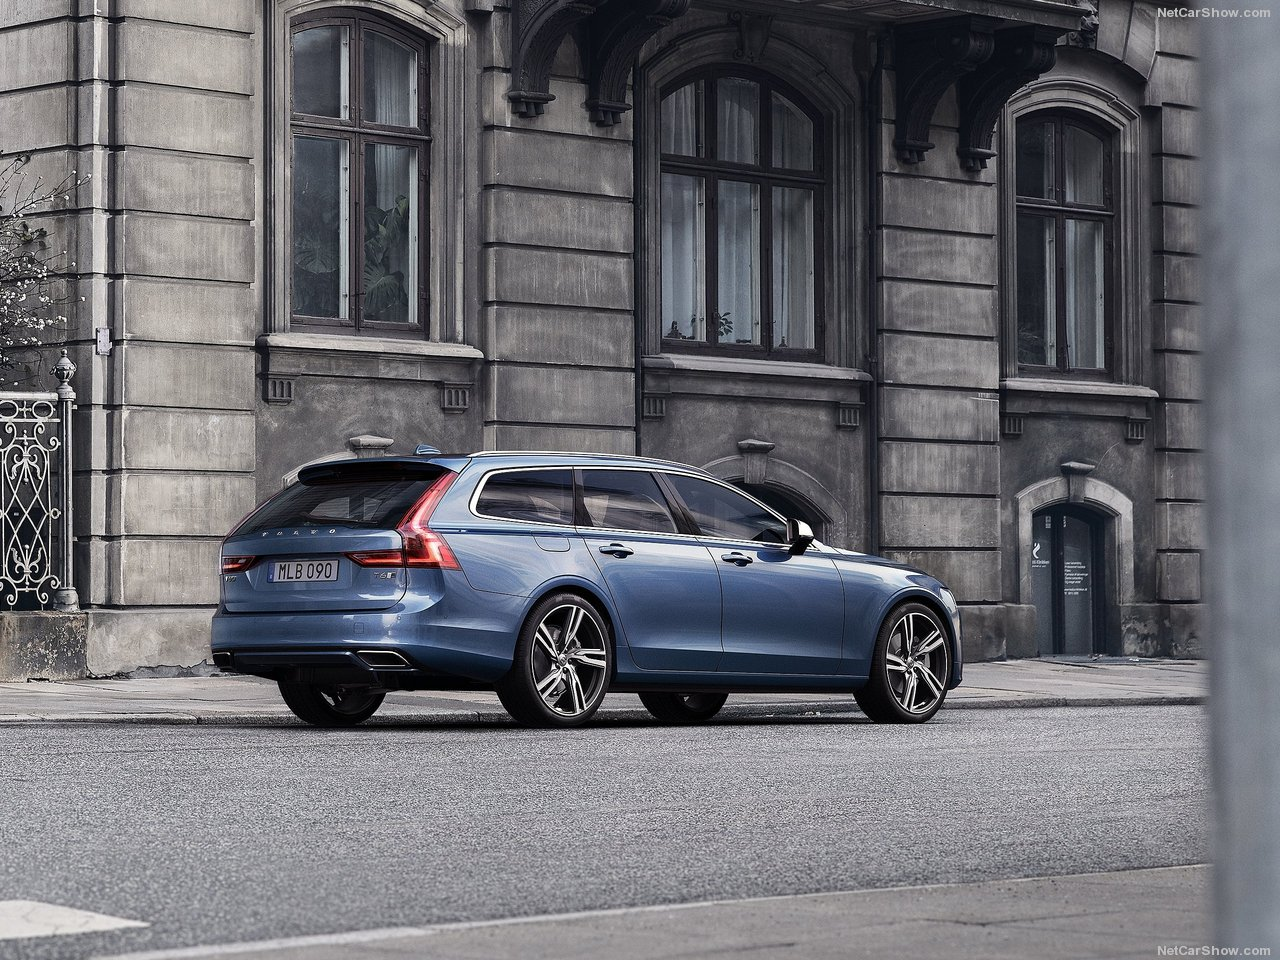 Volvo V90 Polestar Rendering: Why We Want a Performance Hybrid Wagon from Sweden - autoevolution